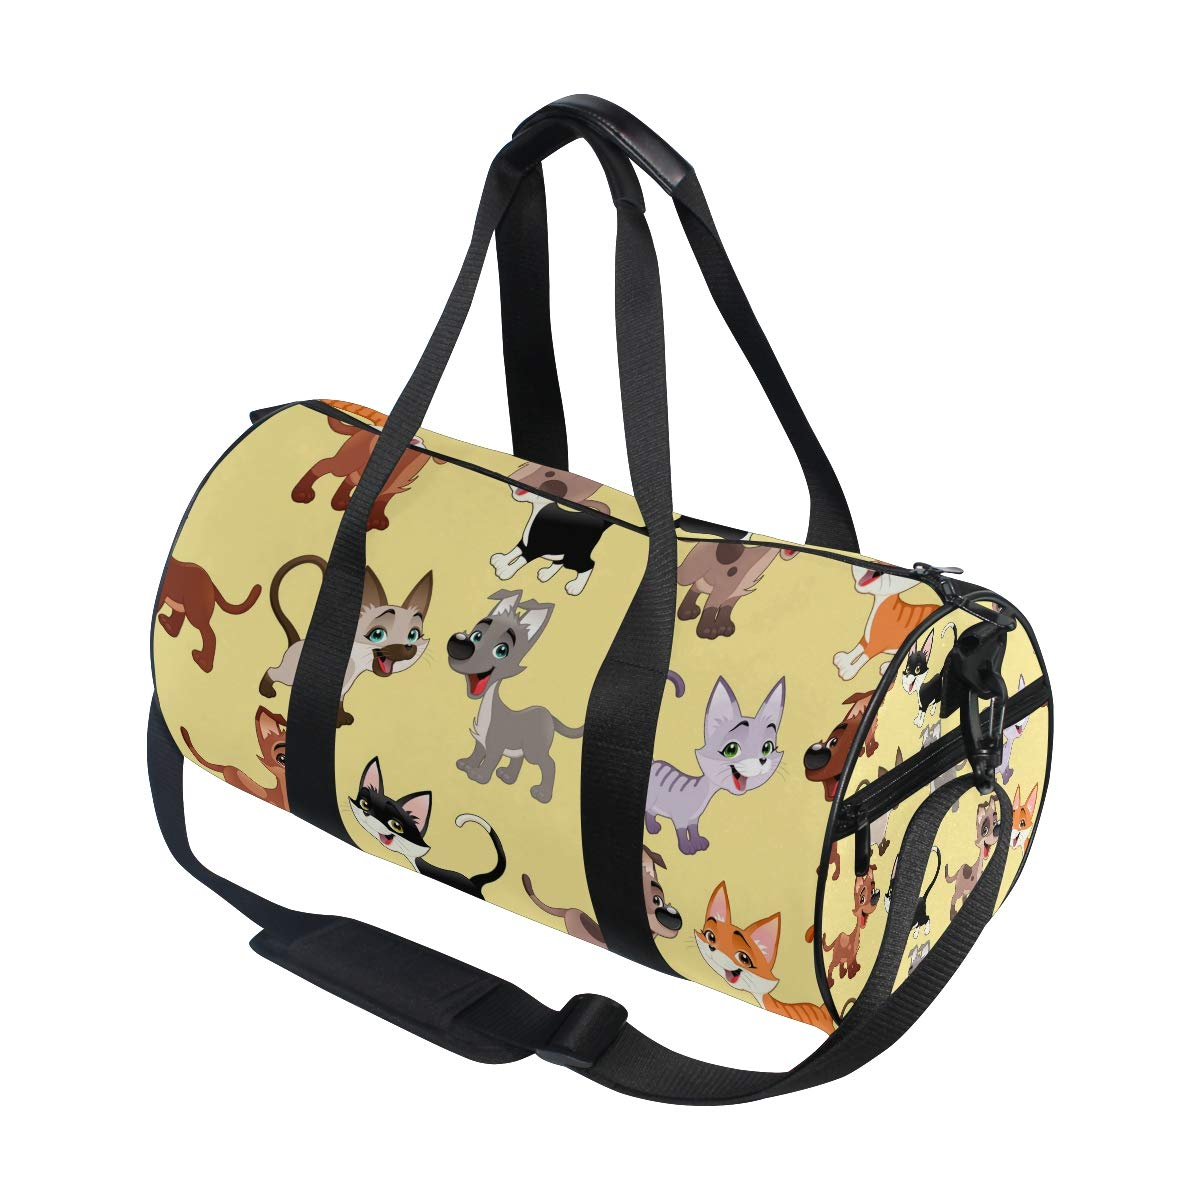 WIHVE Gym Duffel Bag Funny Cats And Dogs Sports Lightweight Canvas Travel Luggage Bag